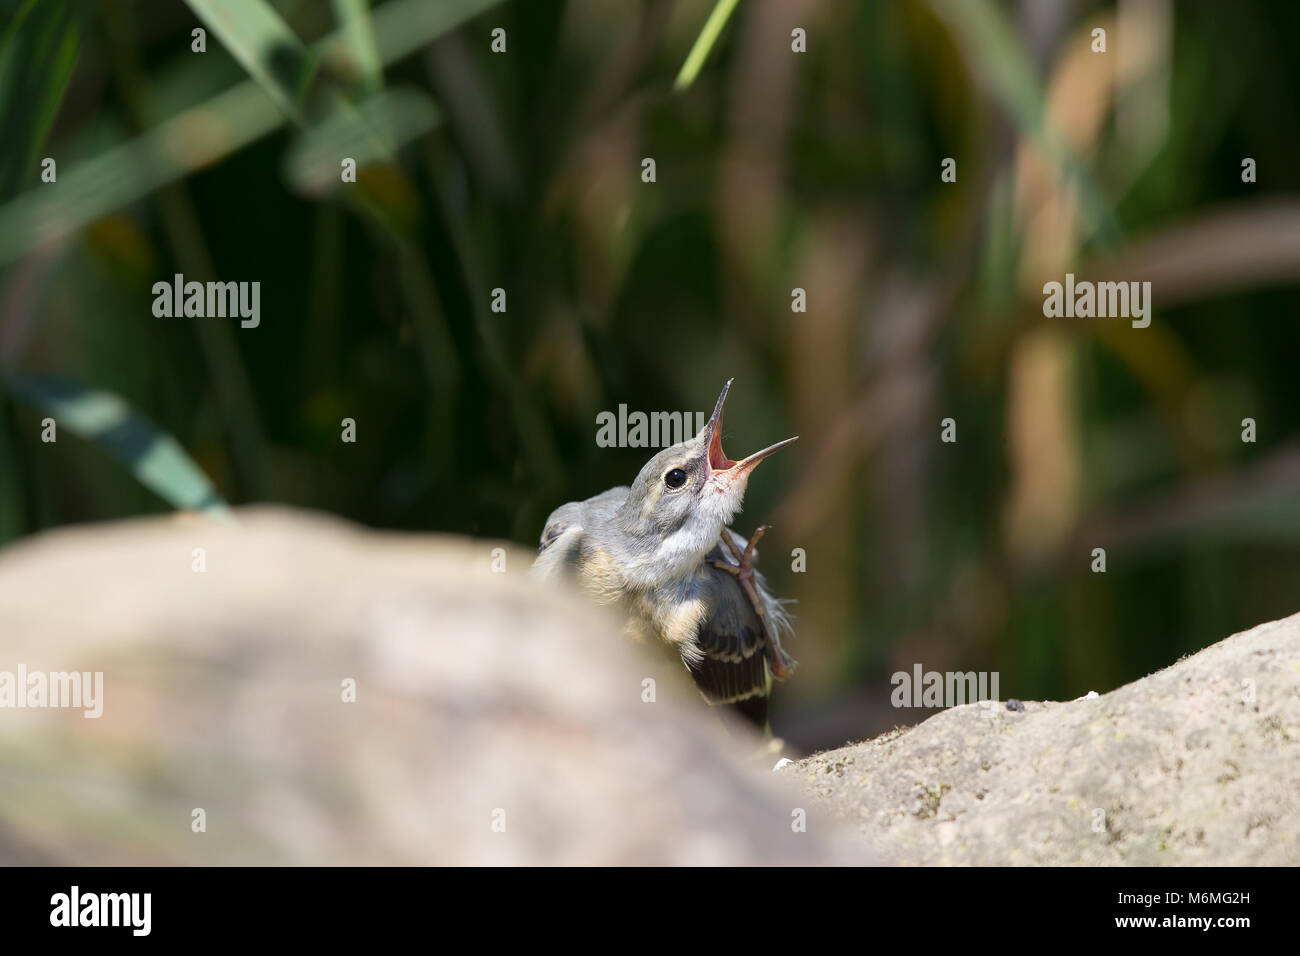 Landscape capture of juvenile grey wagtail (Mottacilla cinerea) calling to its parent. UK woodland habitat. - Stock Image